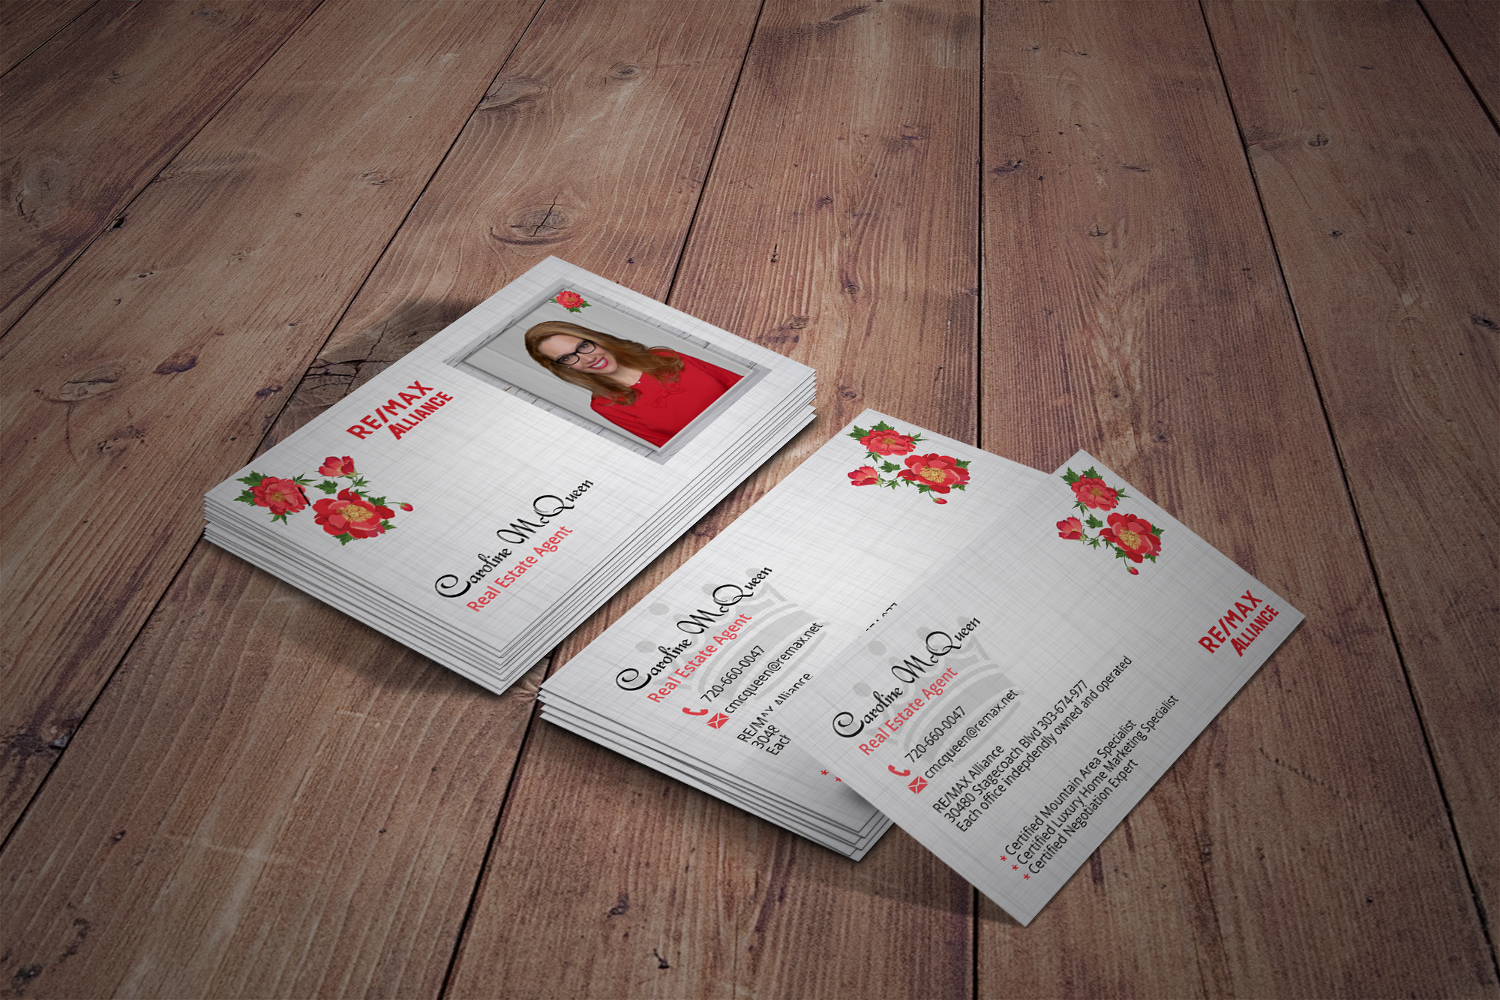 Feminine elegant real estate agent business card design for remax business card design by tanama creations for remax alliance design 18045511 reheart Image collections